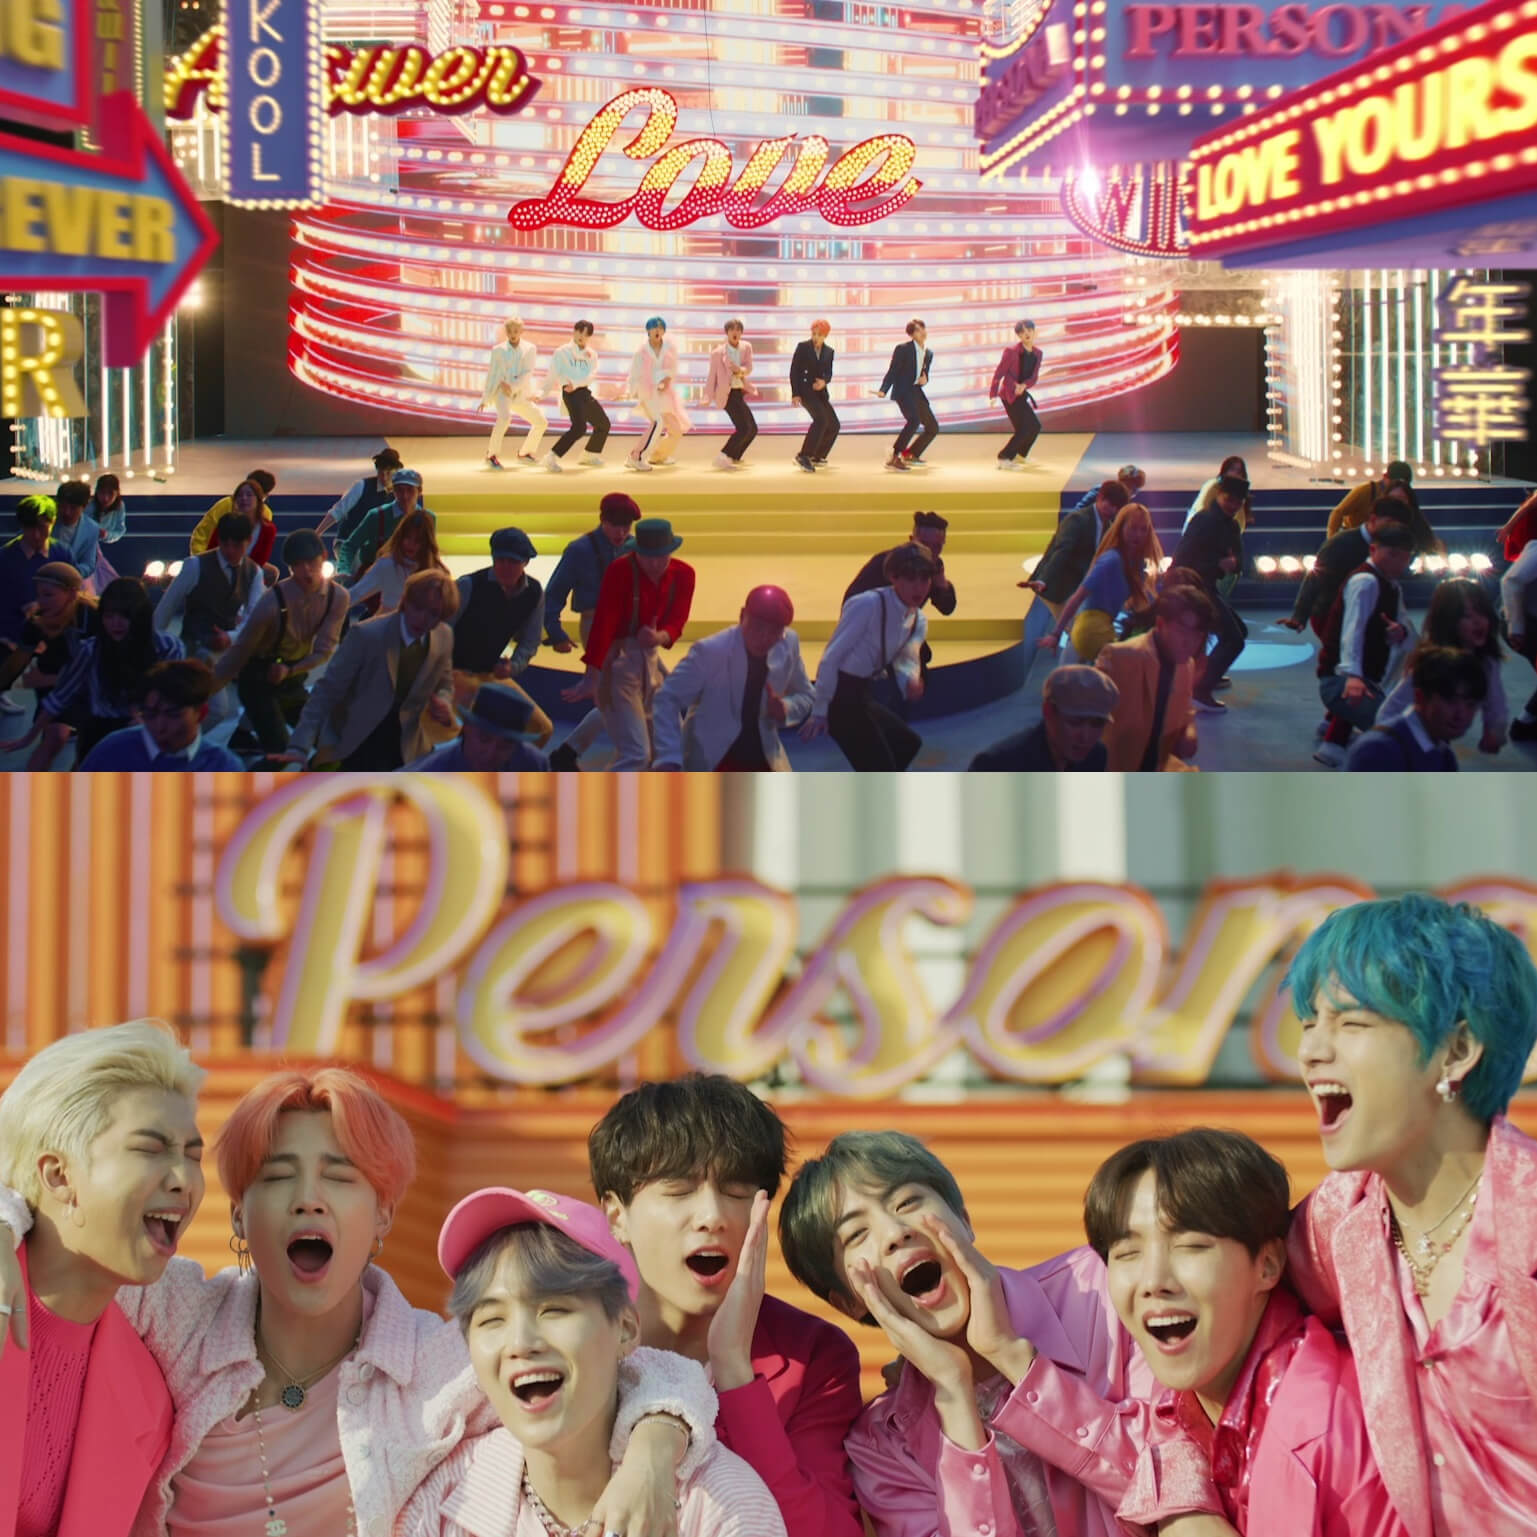 bts boy with luv with halsey